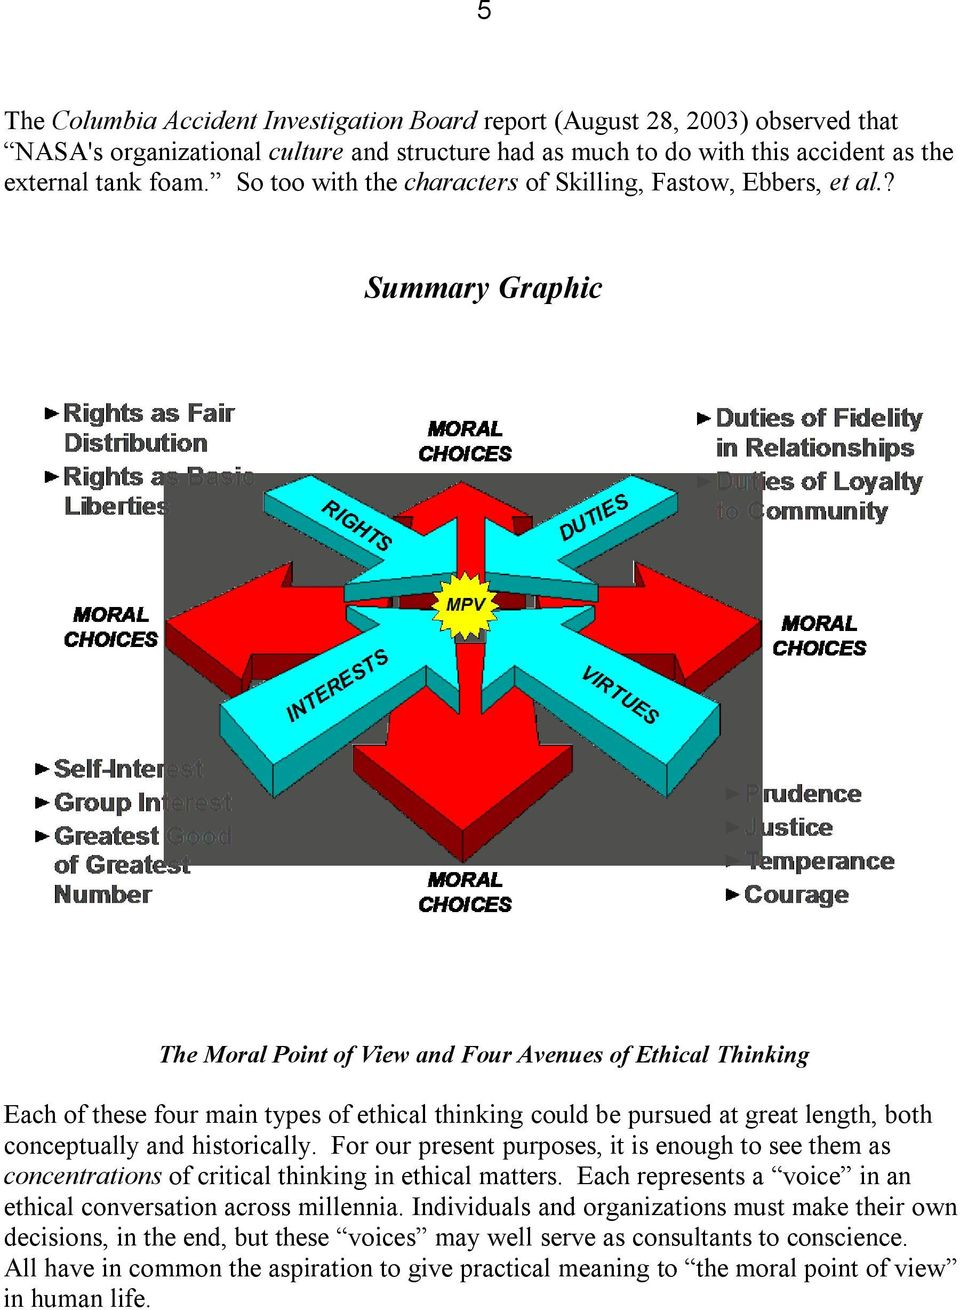 ? Summary Graphic The Moral Point of View and Four Avenues of Ethical Thinking Each of these four main types of ethical thinking could be pursued at great length, both conceptually and historically.